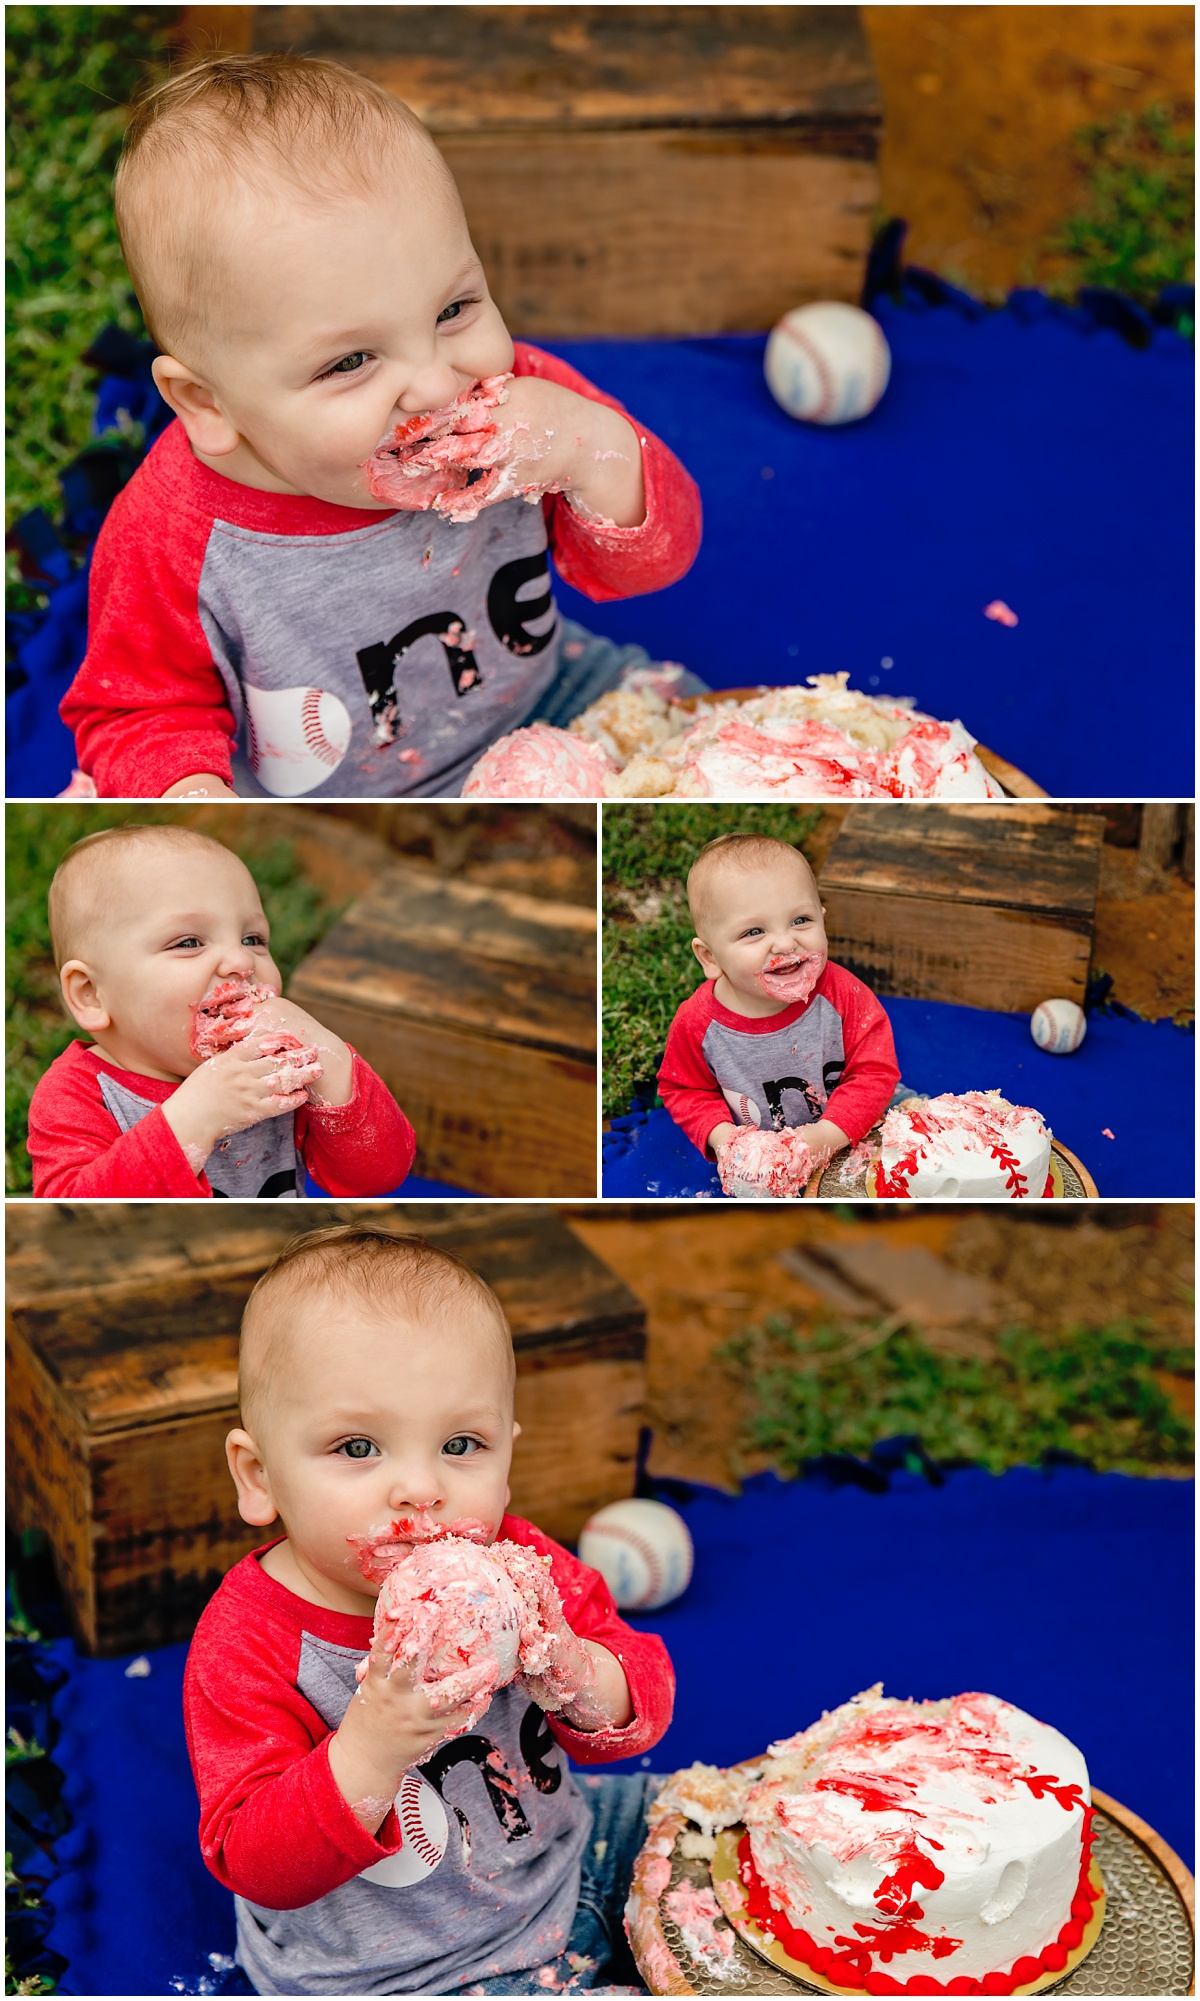 Cake-Smash-Baseball-Theme-First-Birthday-Carly-Barton-Photography_0008.jpg